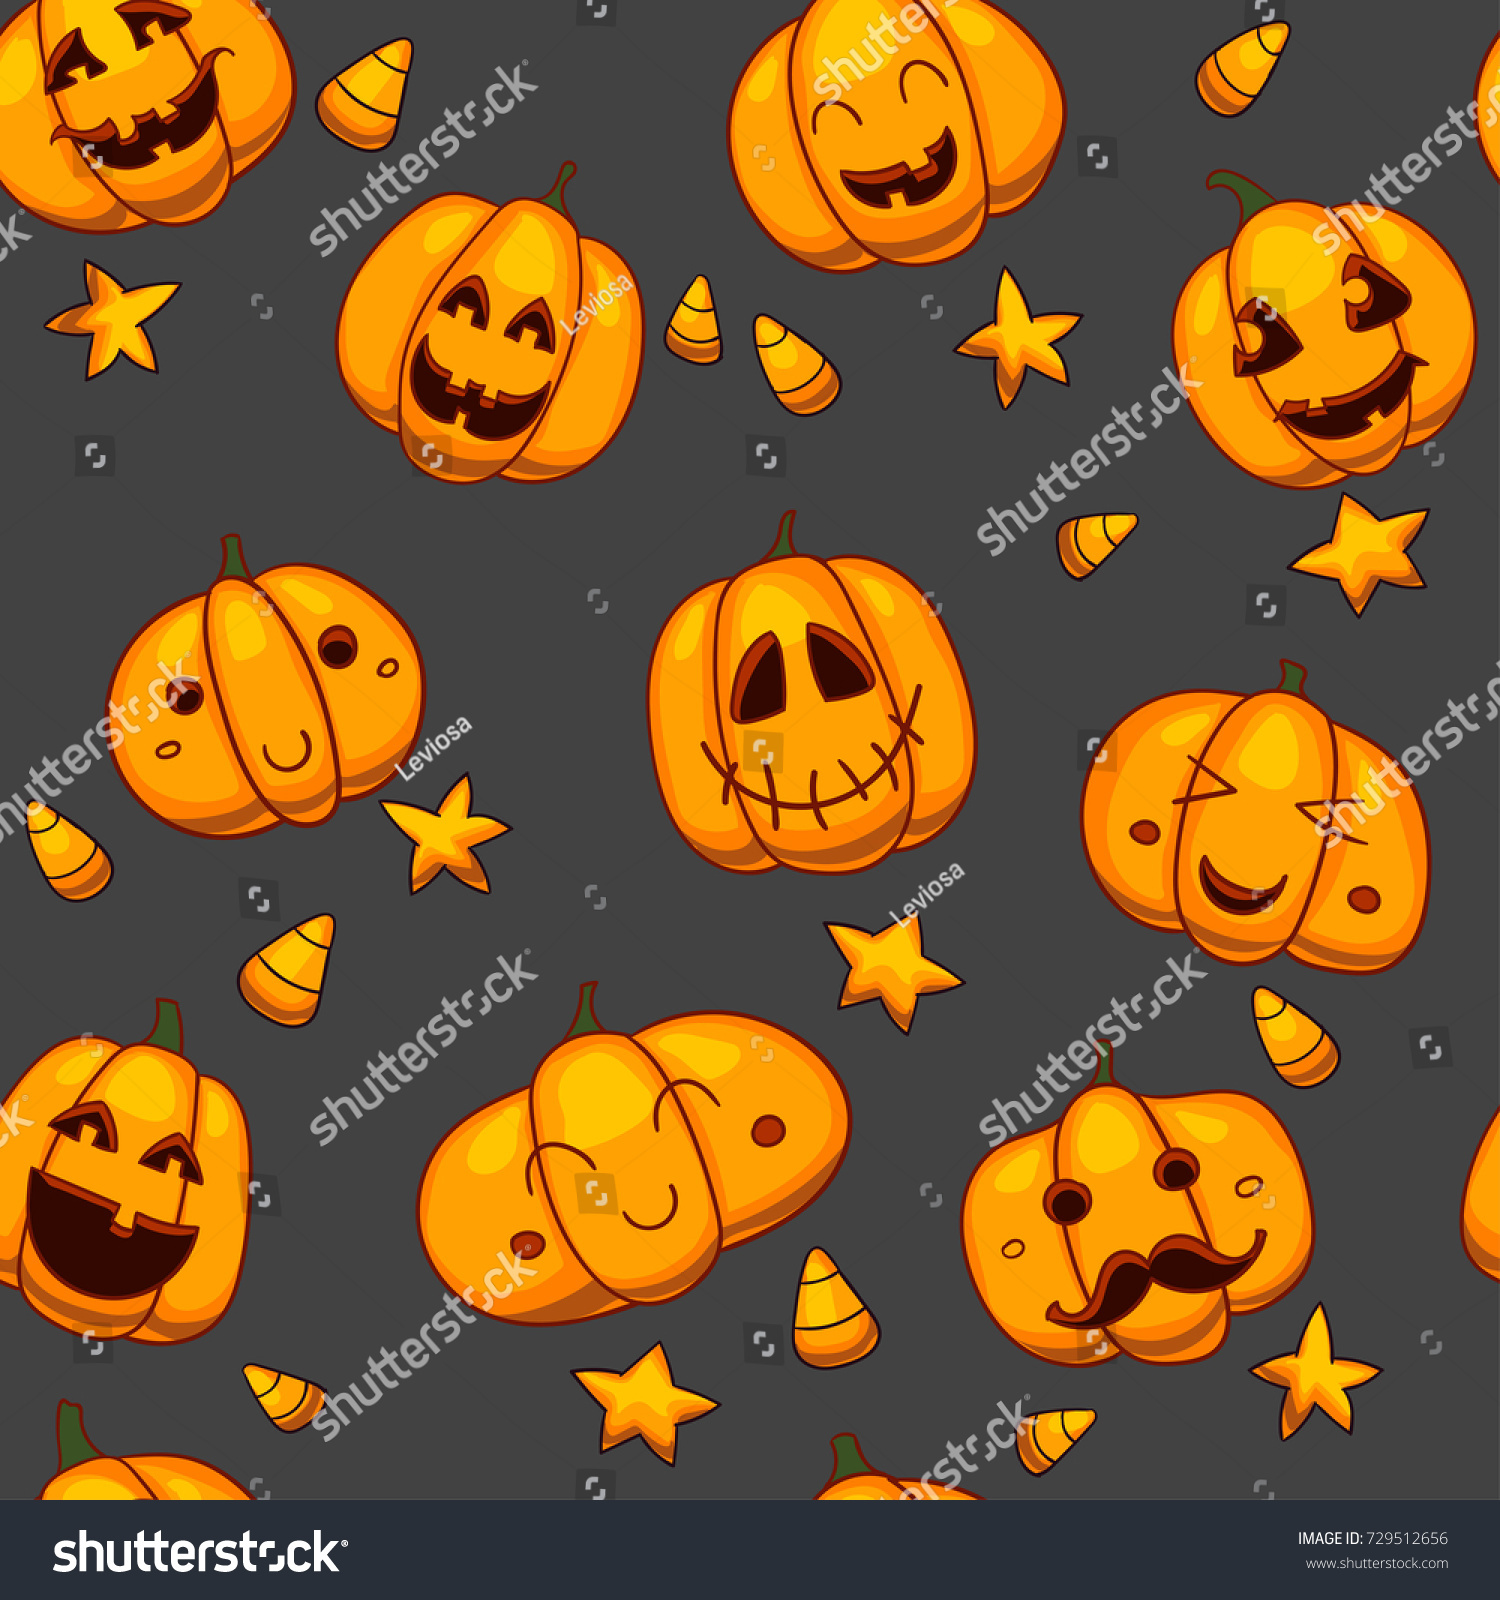 pattern with Halloween objects